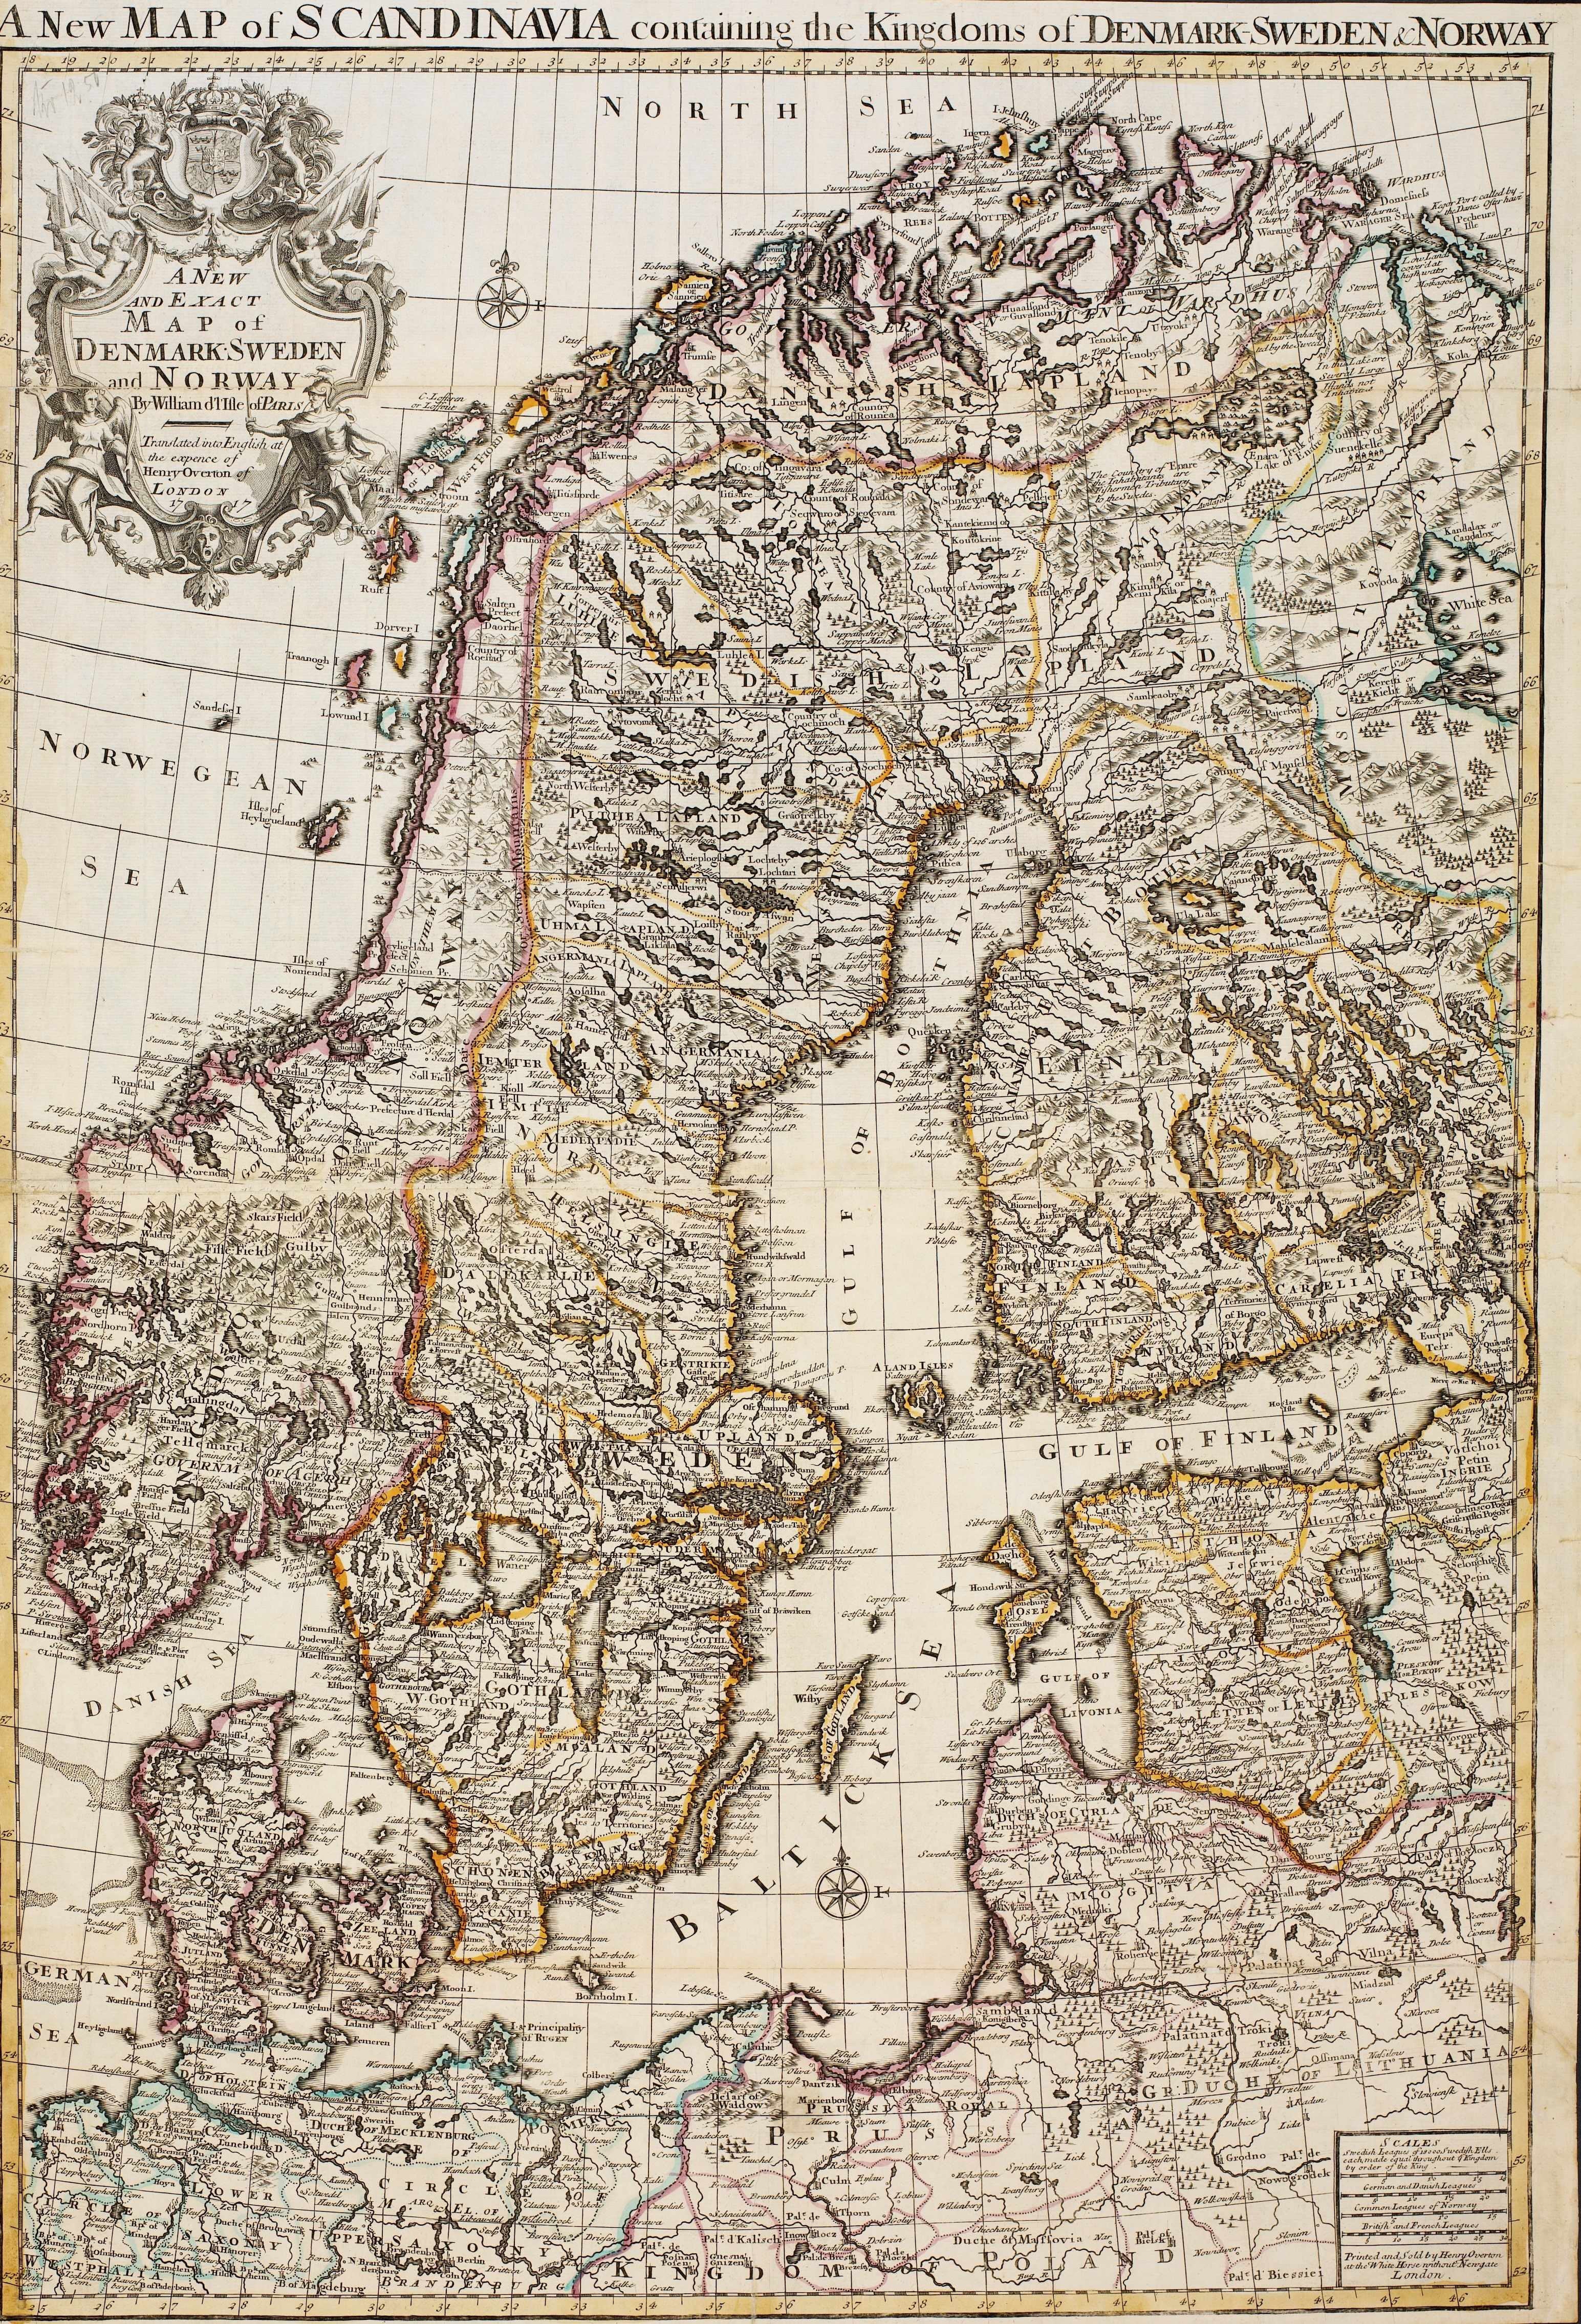 FileA New And Exact Map Of Denmark Sweden And Norway Nonb Krt - Norway map 2014